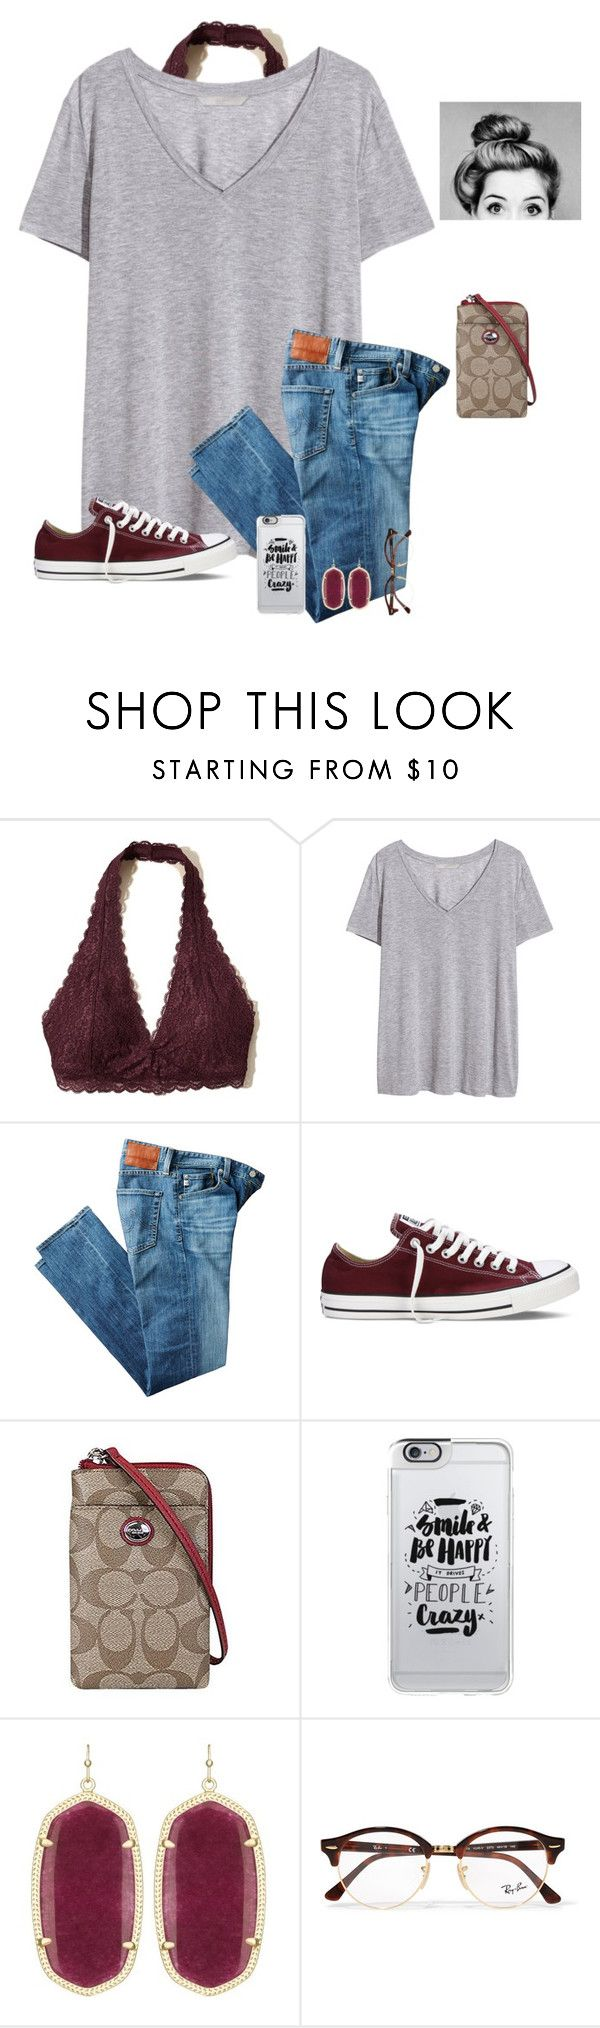 QOTD| What color are your eyes by raquate1232 ❤ liked on Polyvore featuring Hollister Co., HM, AG Adriano Goldschmied, Converse, Coach, Casetify, Kendra Scott and Ray-Ban